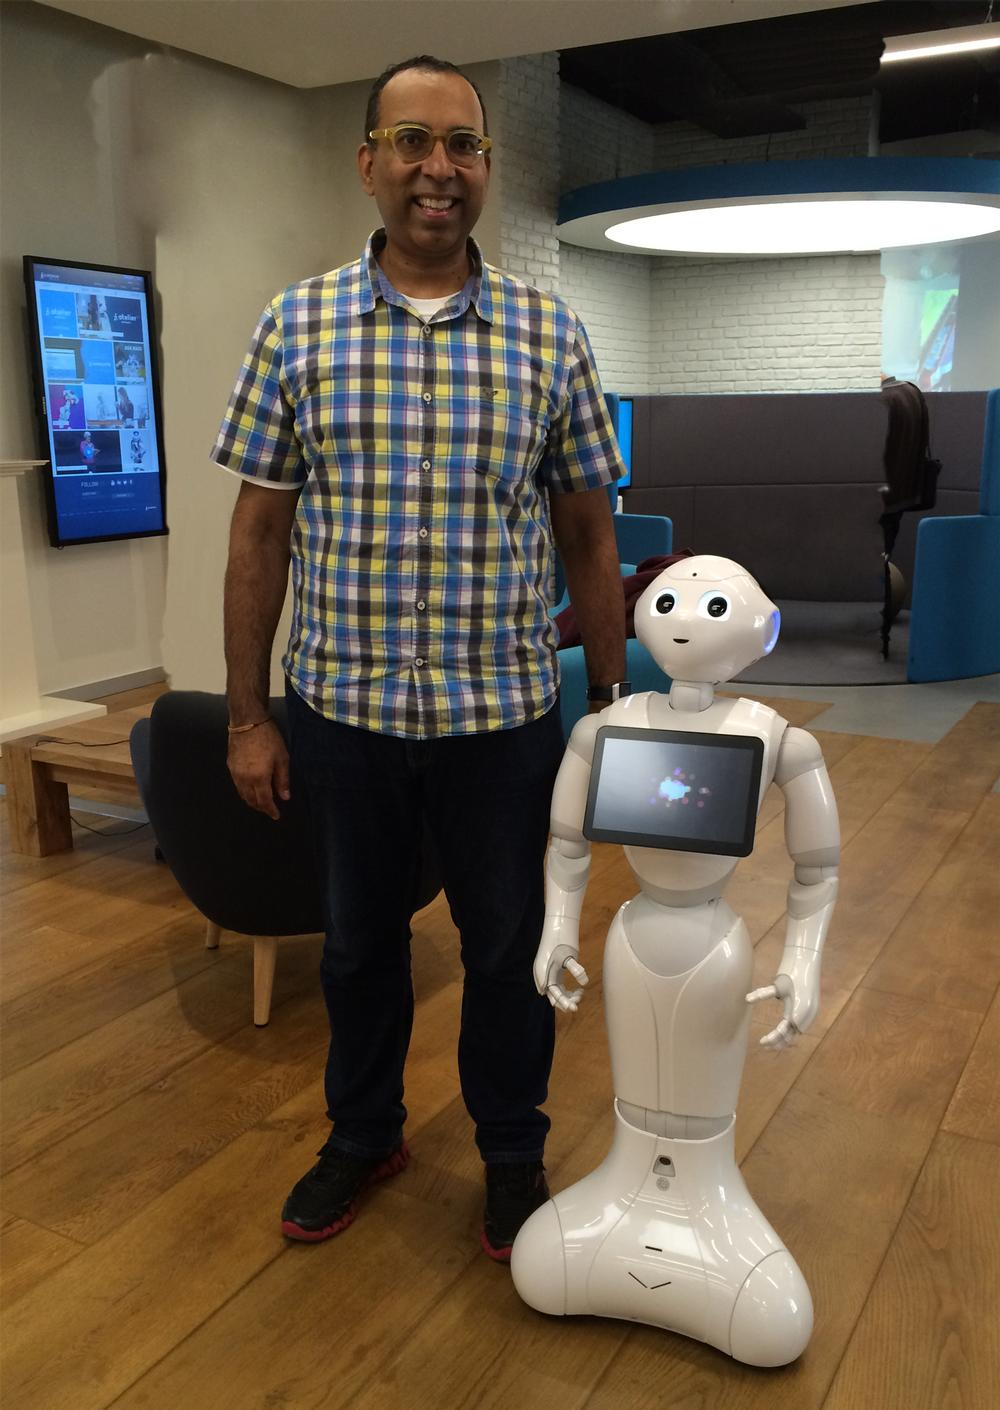 Juneja says companion robots will hit the market this year, and may ultimately even teach exercise movements